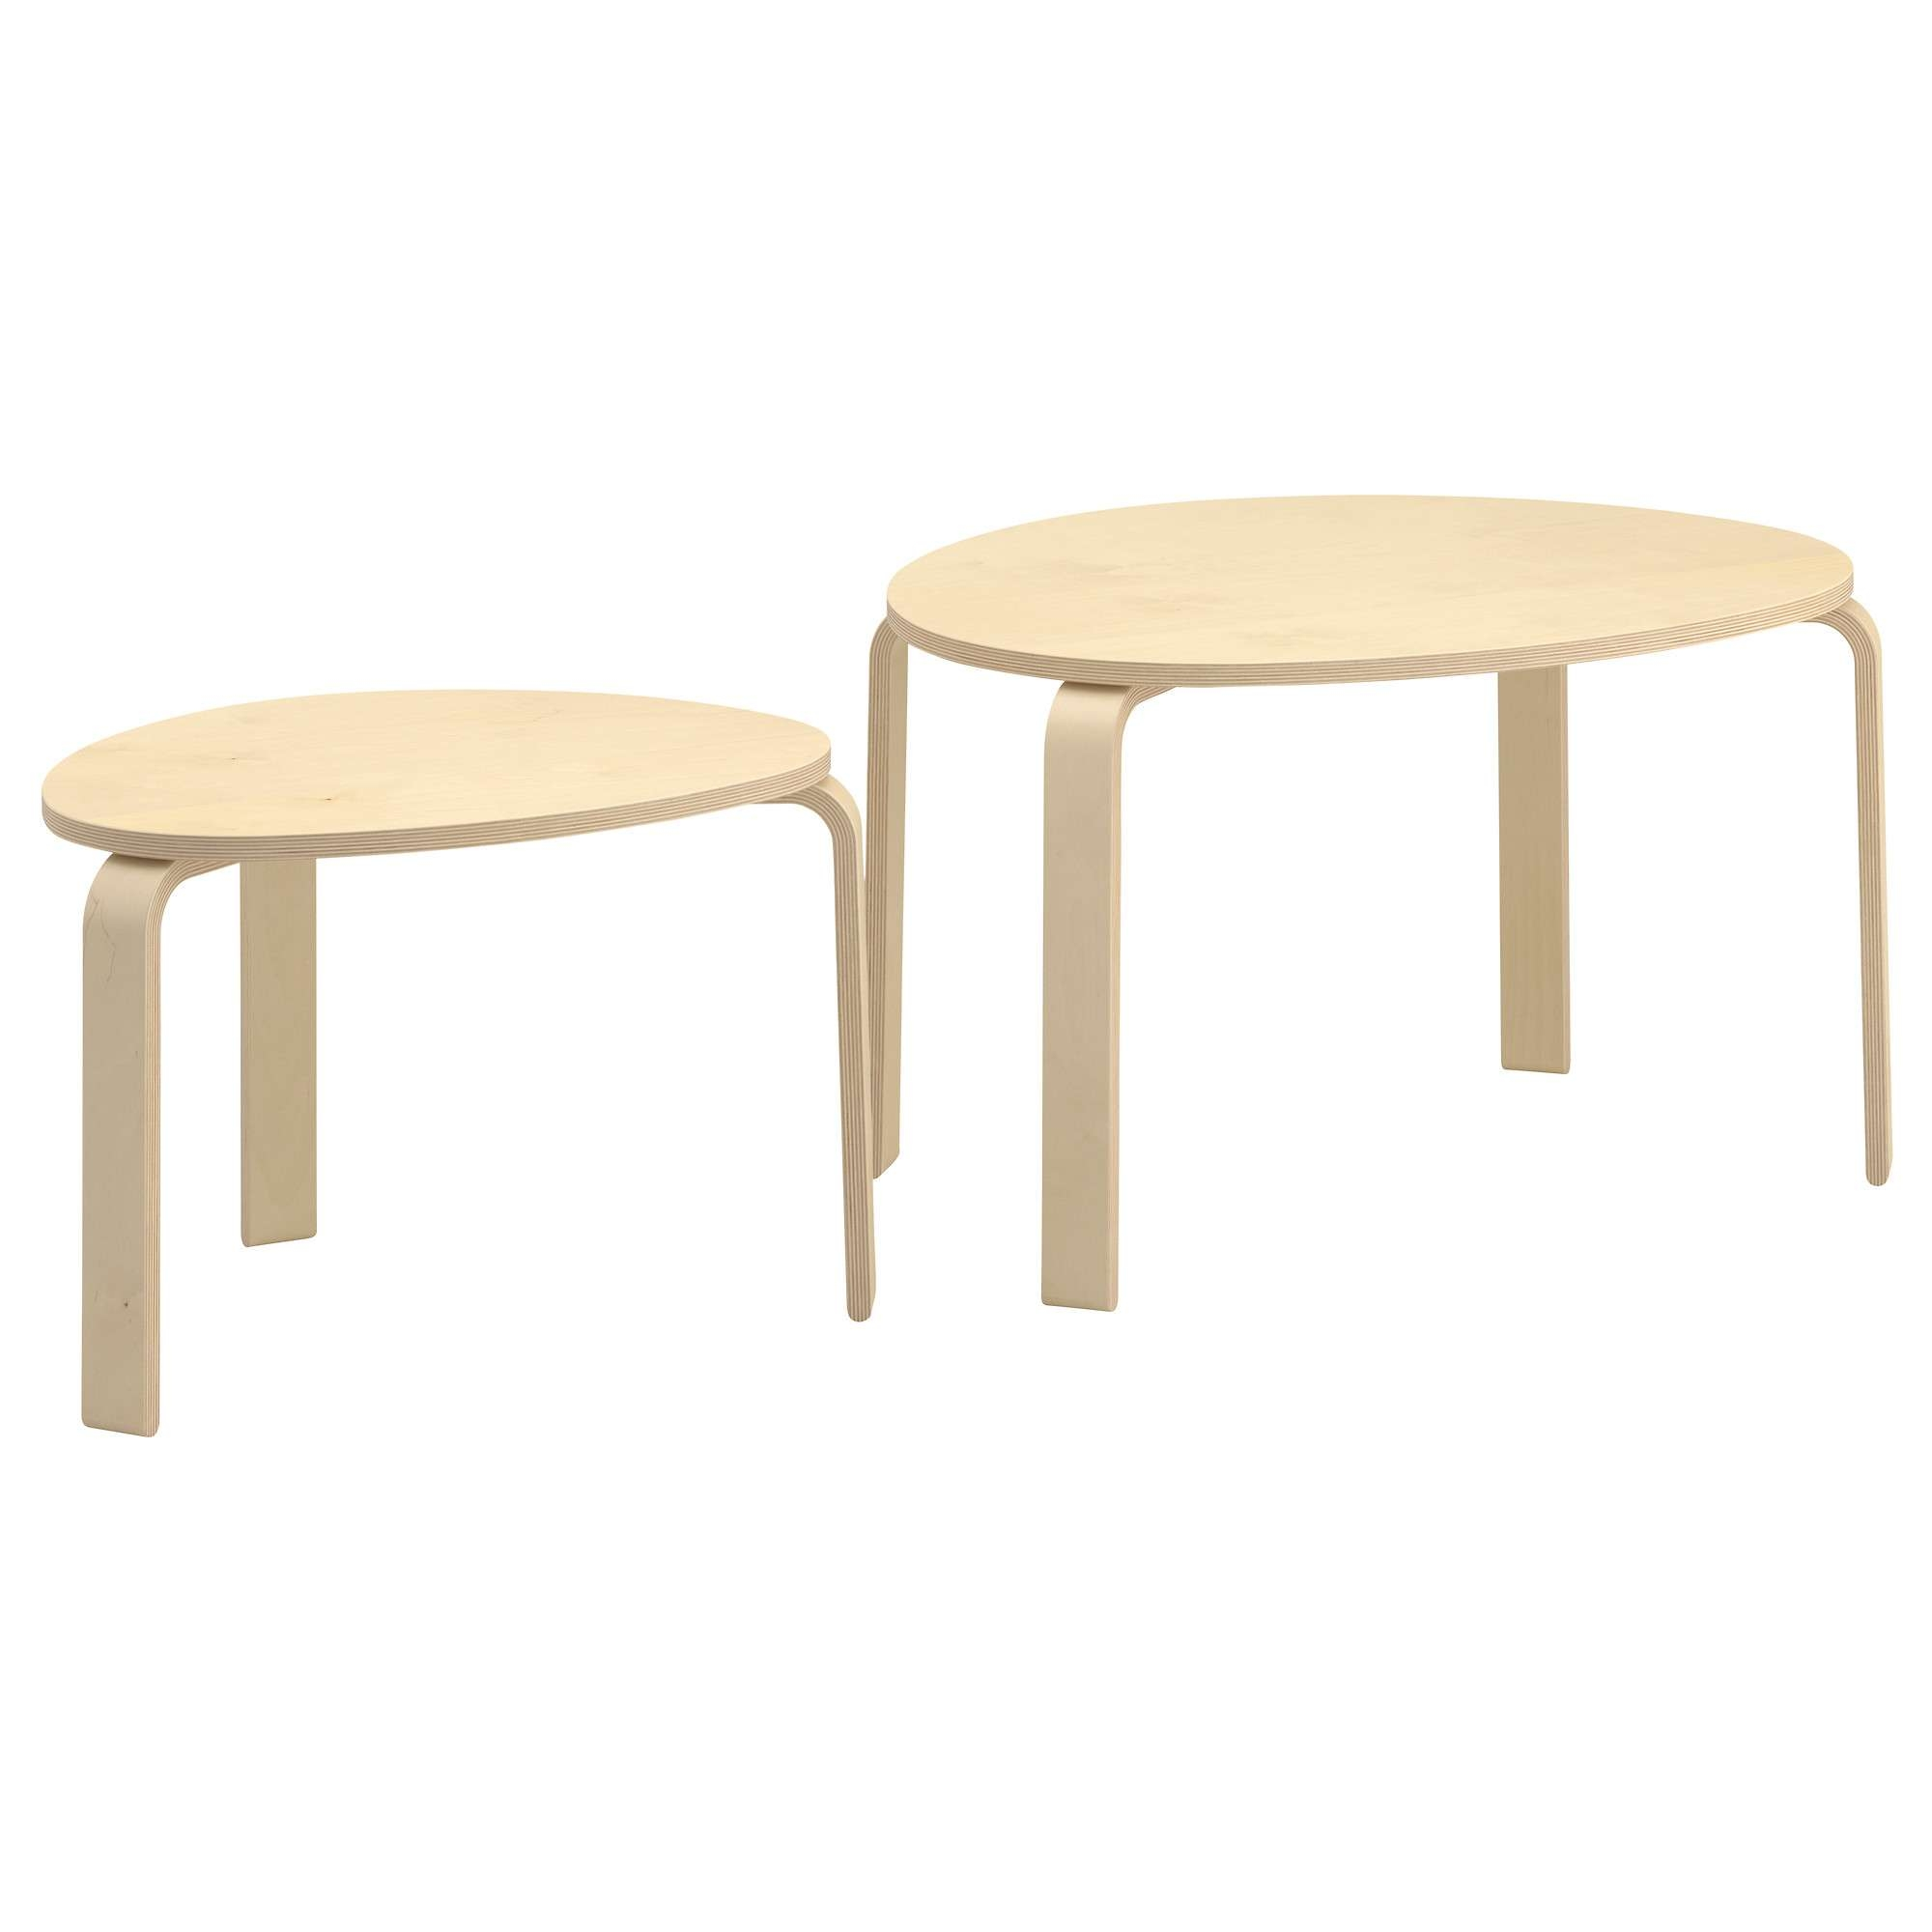 2017 Nest Coffee Tables For Svalsta Nesting Tables, Set Of 2 – Birch Veneer – Ikea (View 1 of 20)